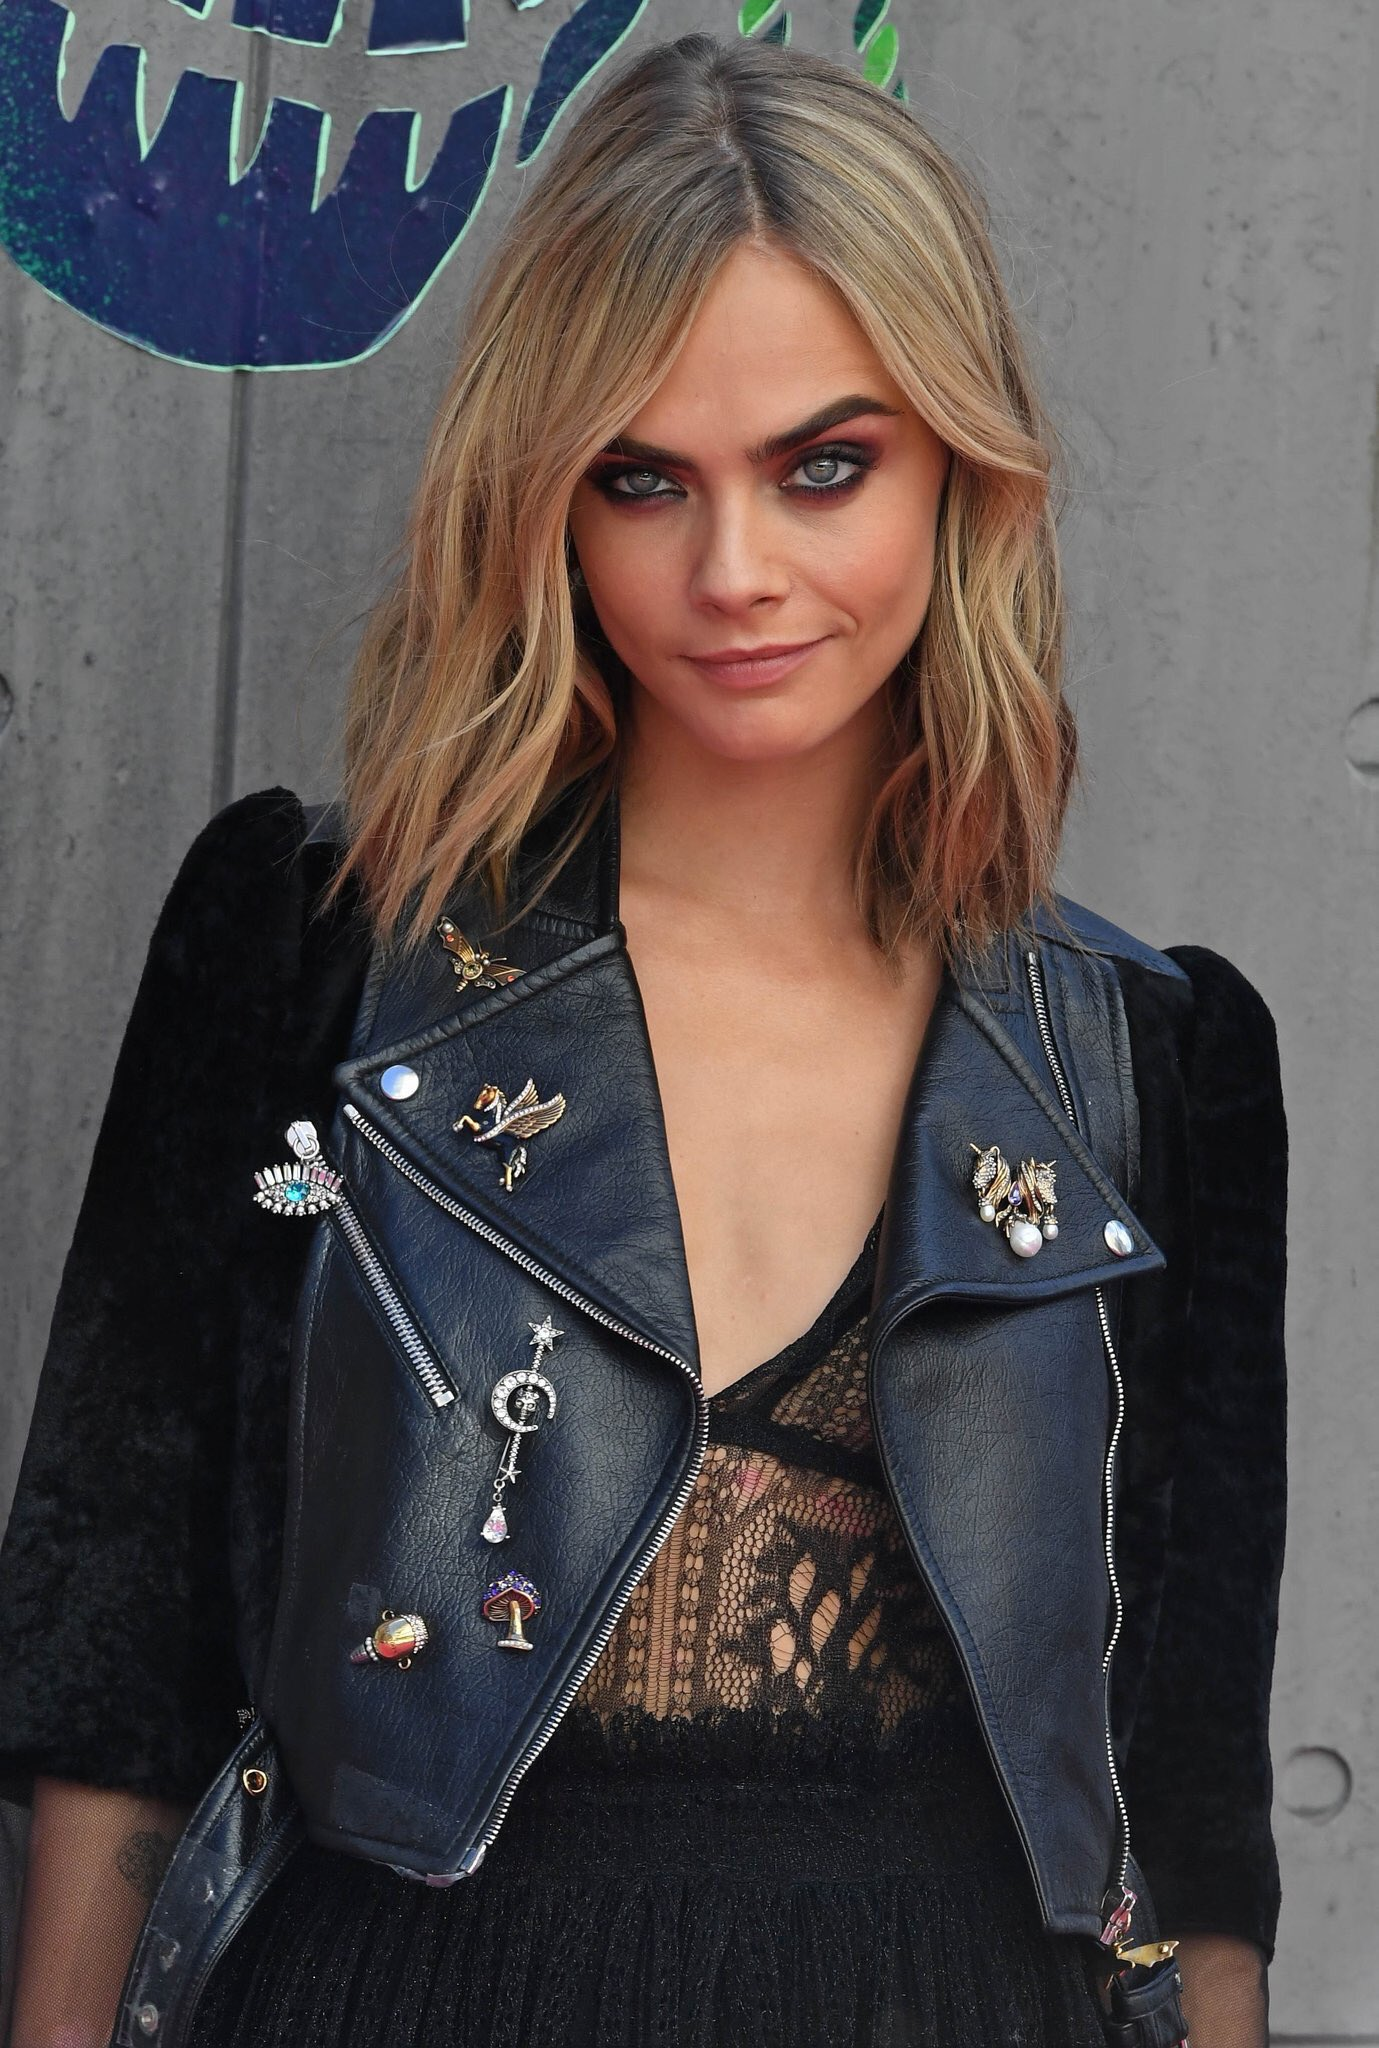 Happy 25th birthday to Cara Delevingne